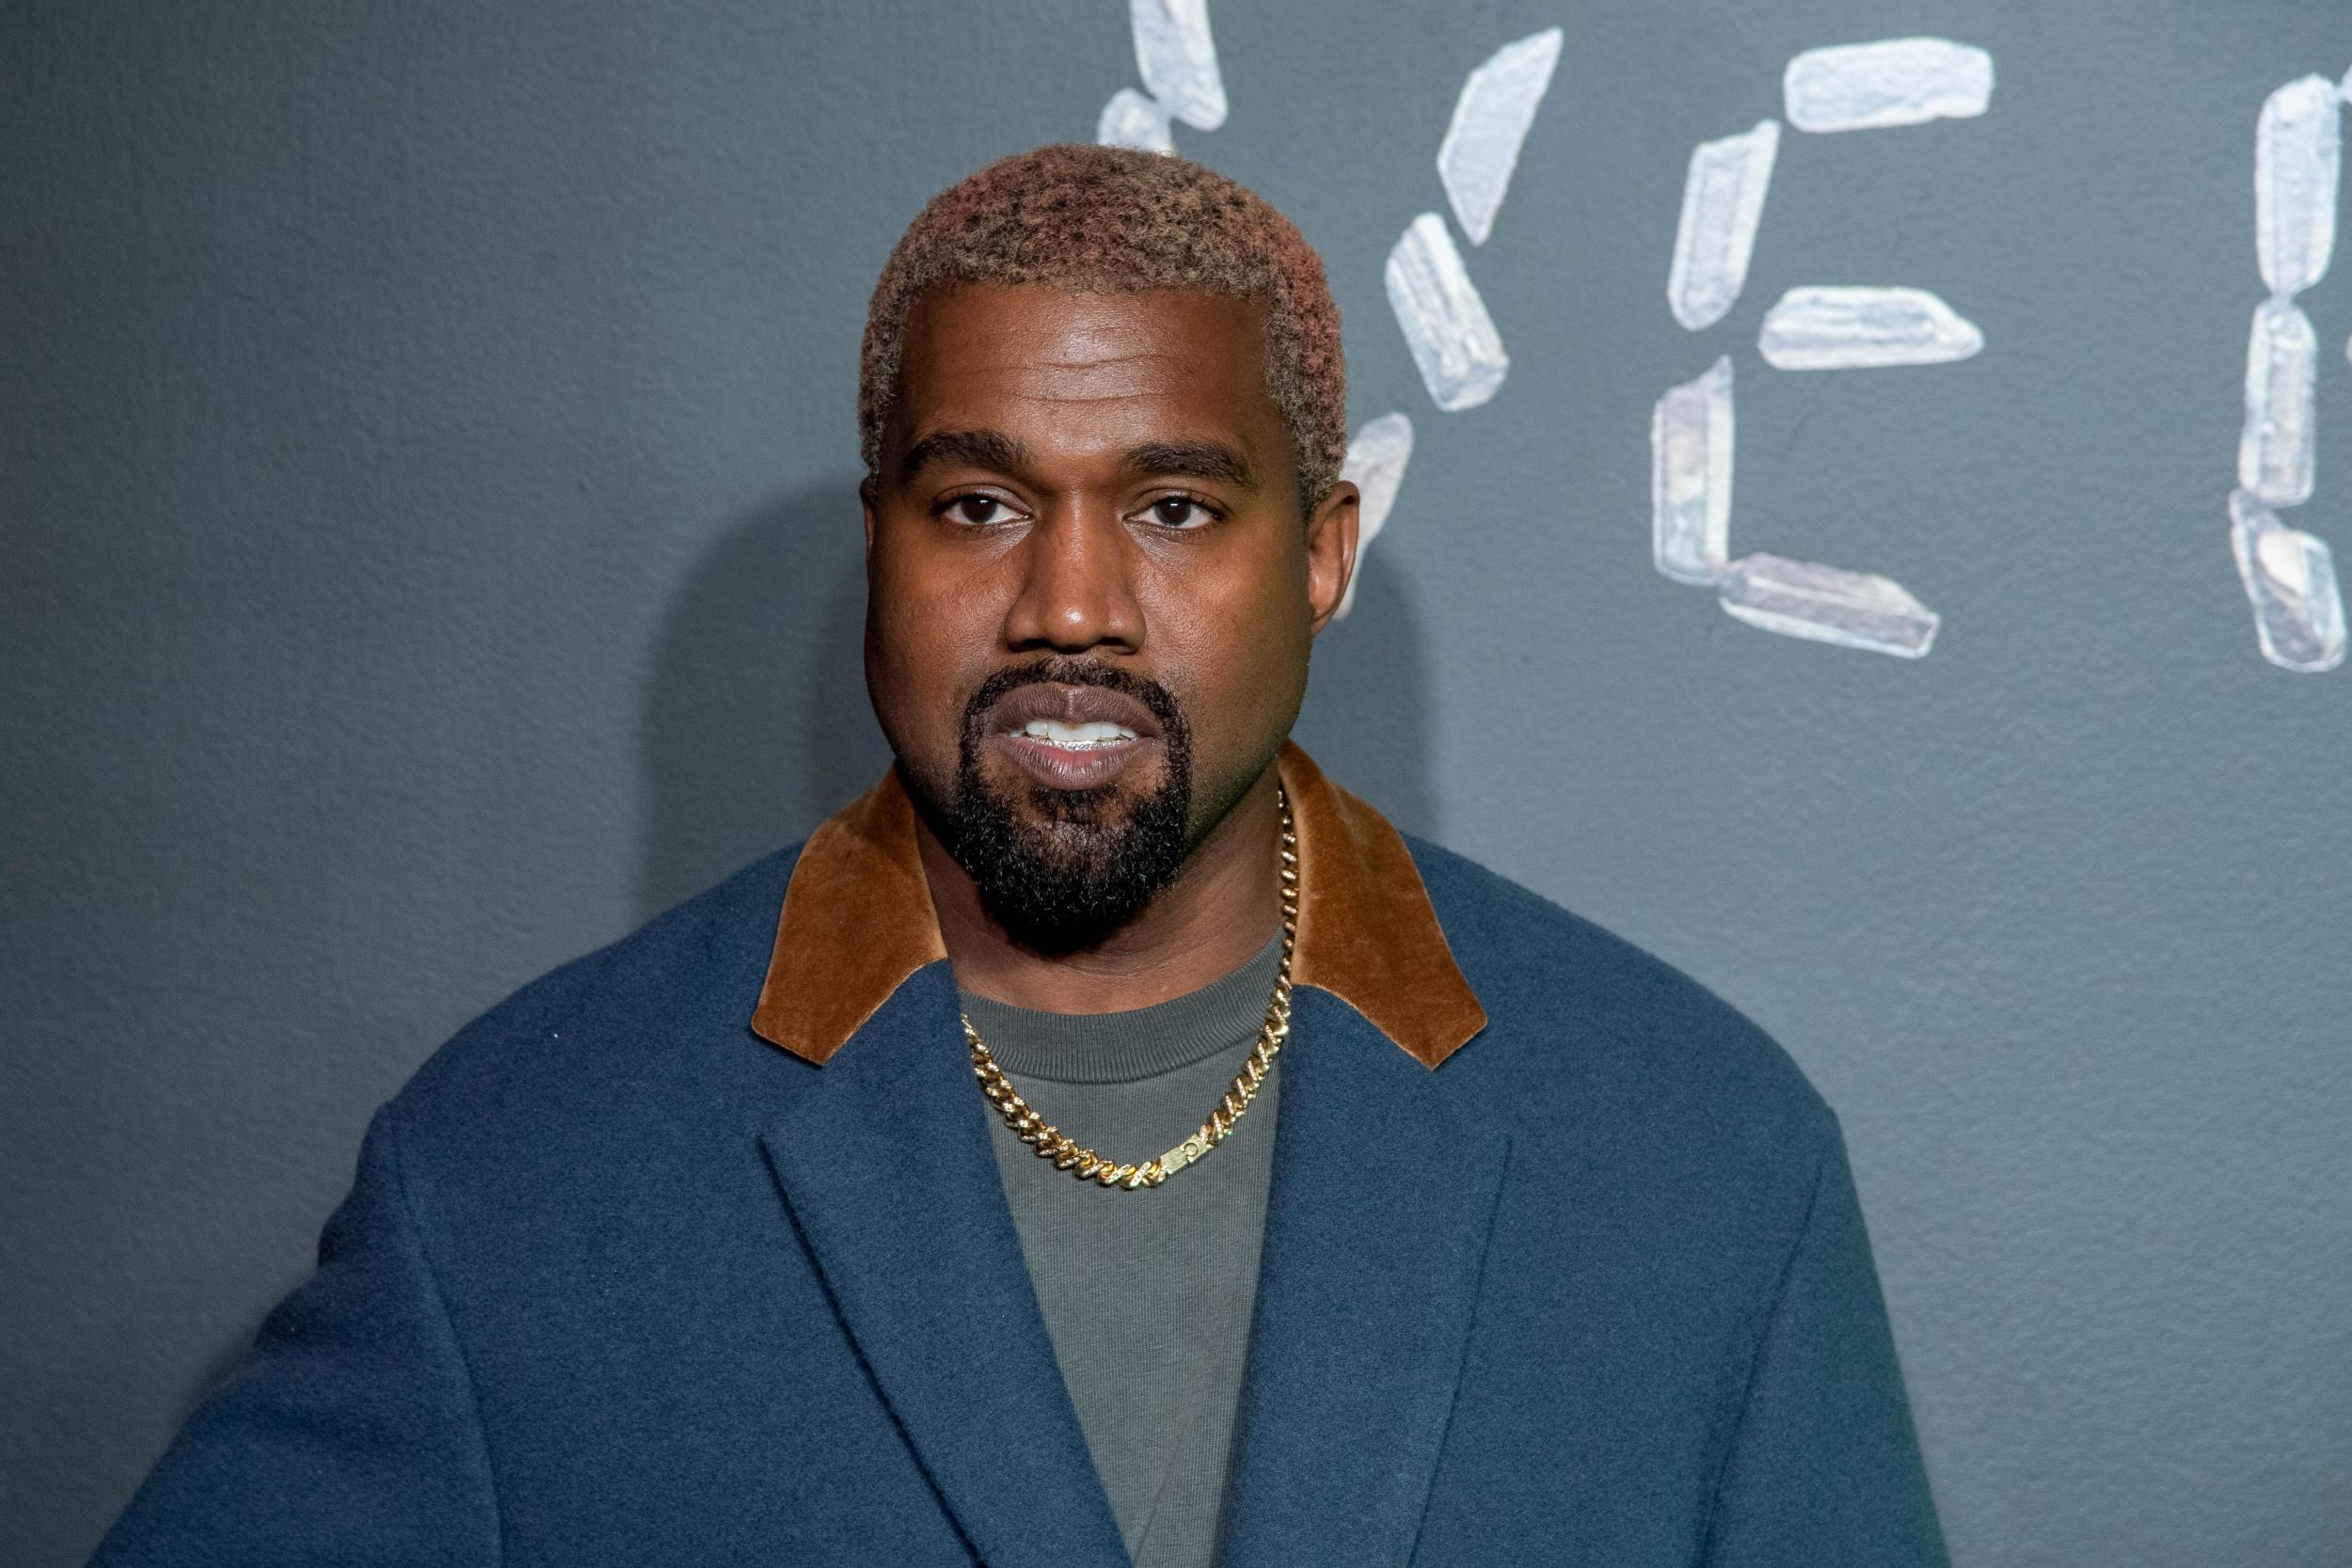 Photo of KANYE WEST SUES ROC-A-FELLA RECORDS AND EMI PUBLISHING